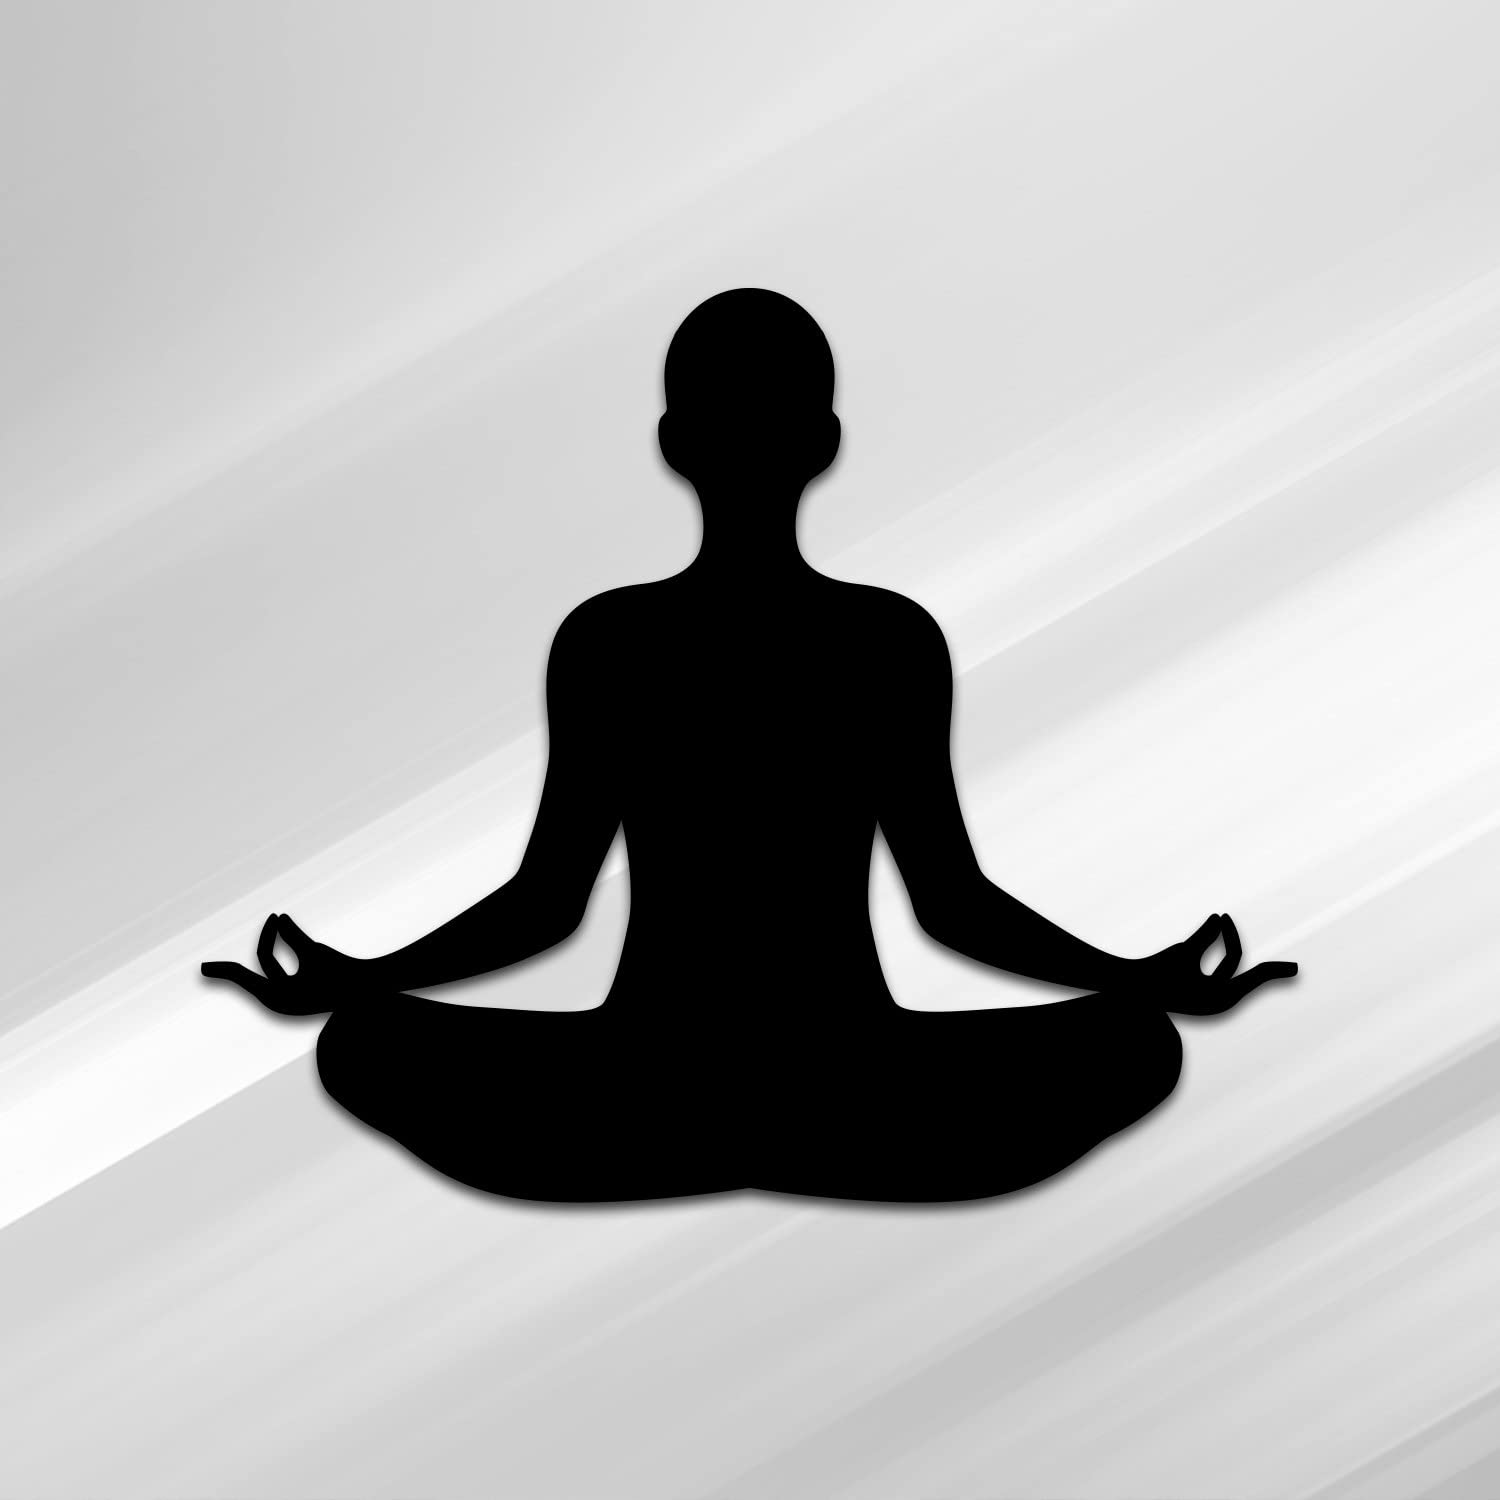 D020-B Premium Quality Vincit Veritas Yoga Pose Nameste Black Vinyl Decal Sticker 5.5-Inches